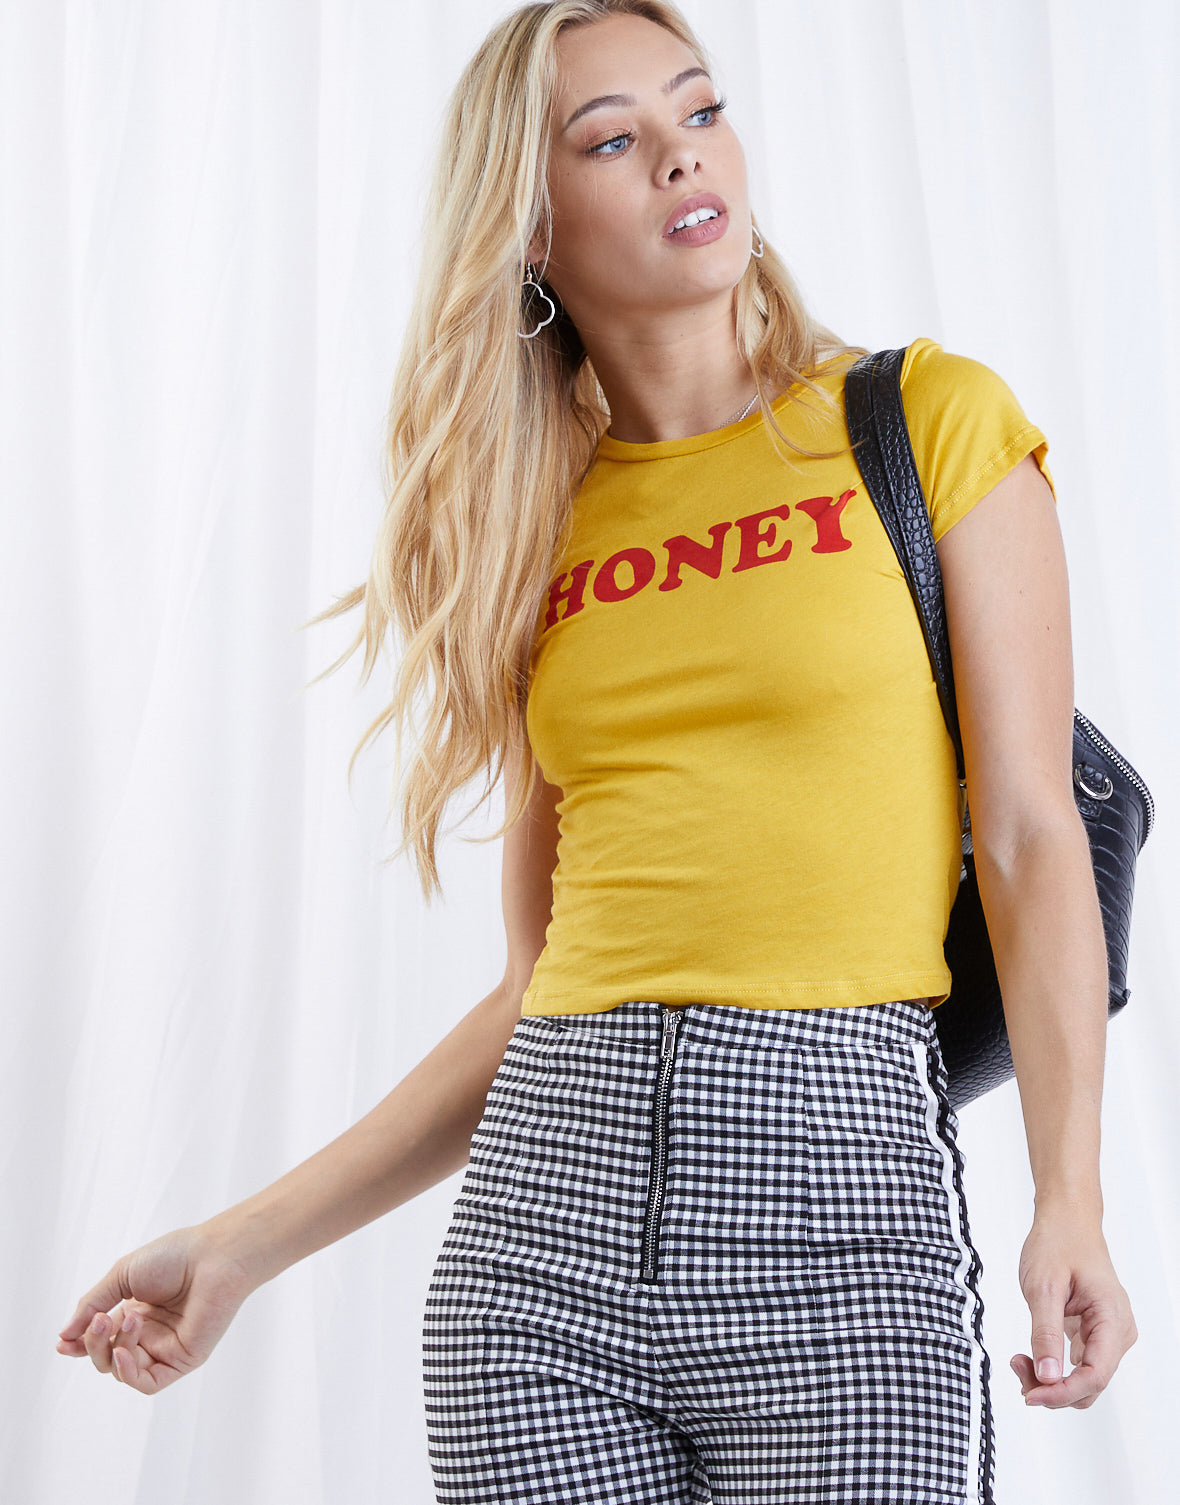 Sweet Honey Tee